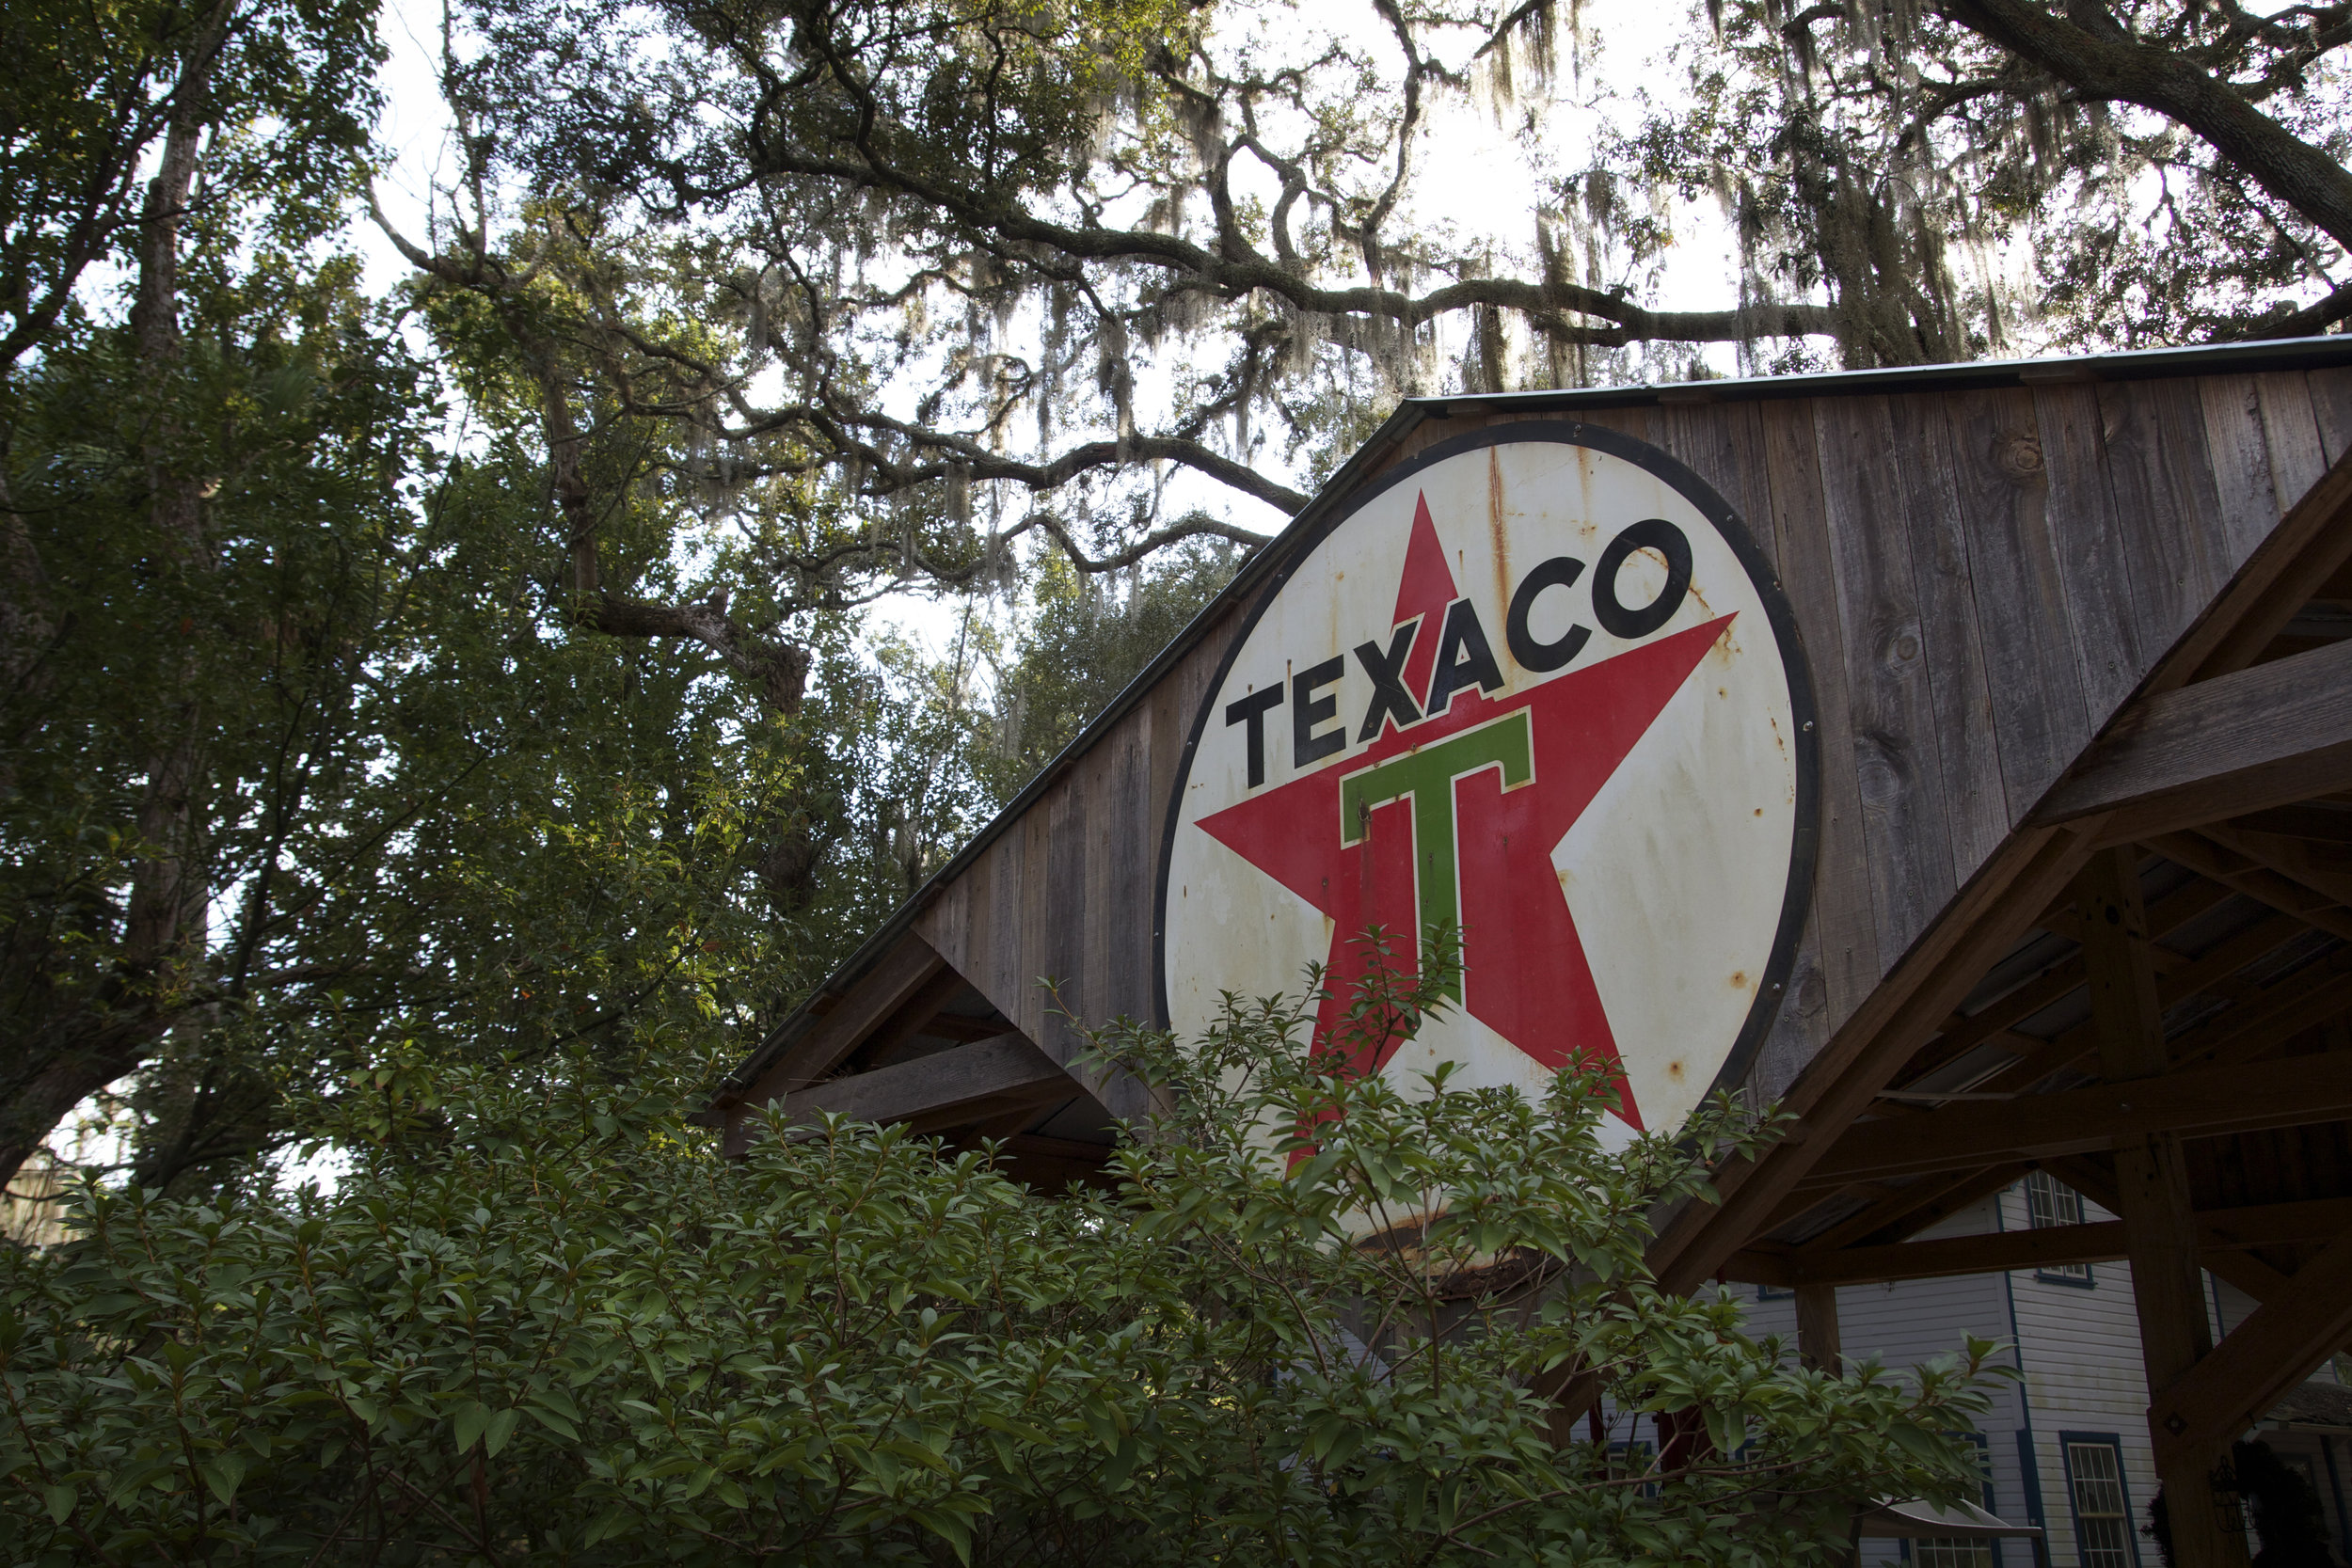 Texaco Pump - This Texaco pumping station, which still works, was installed in 1925 and is the oldest operational pump in the state of Florida